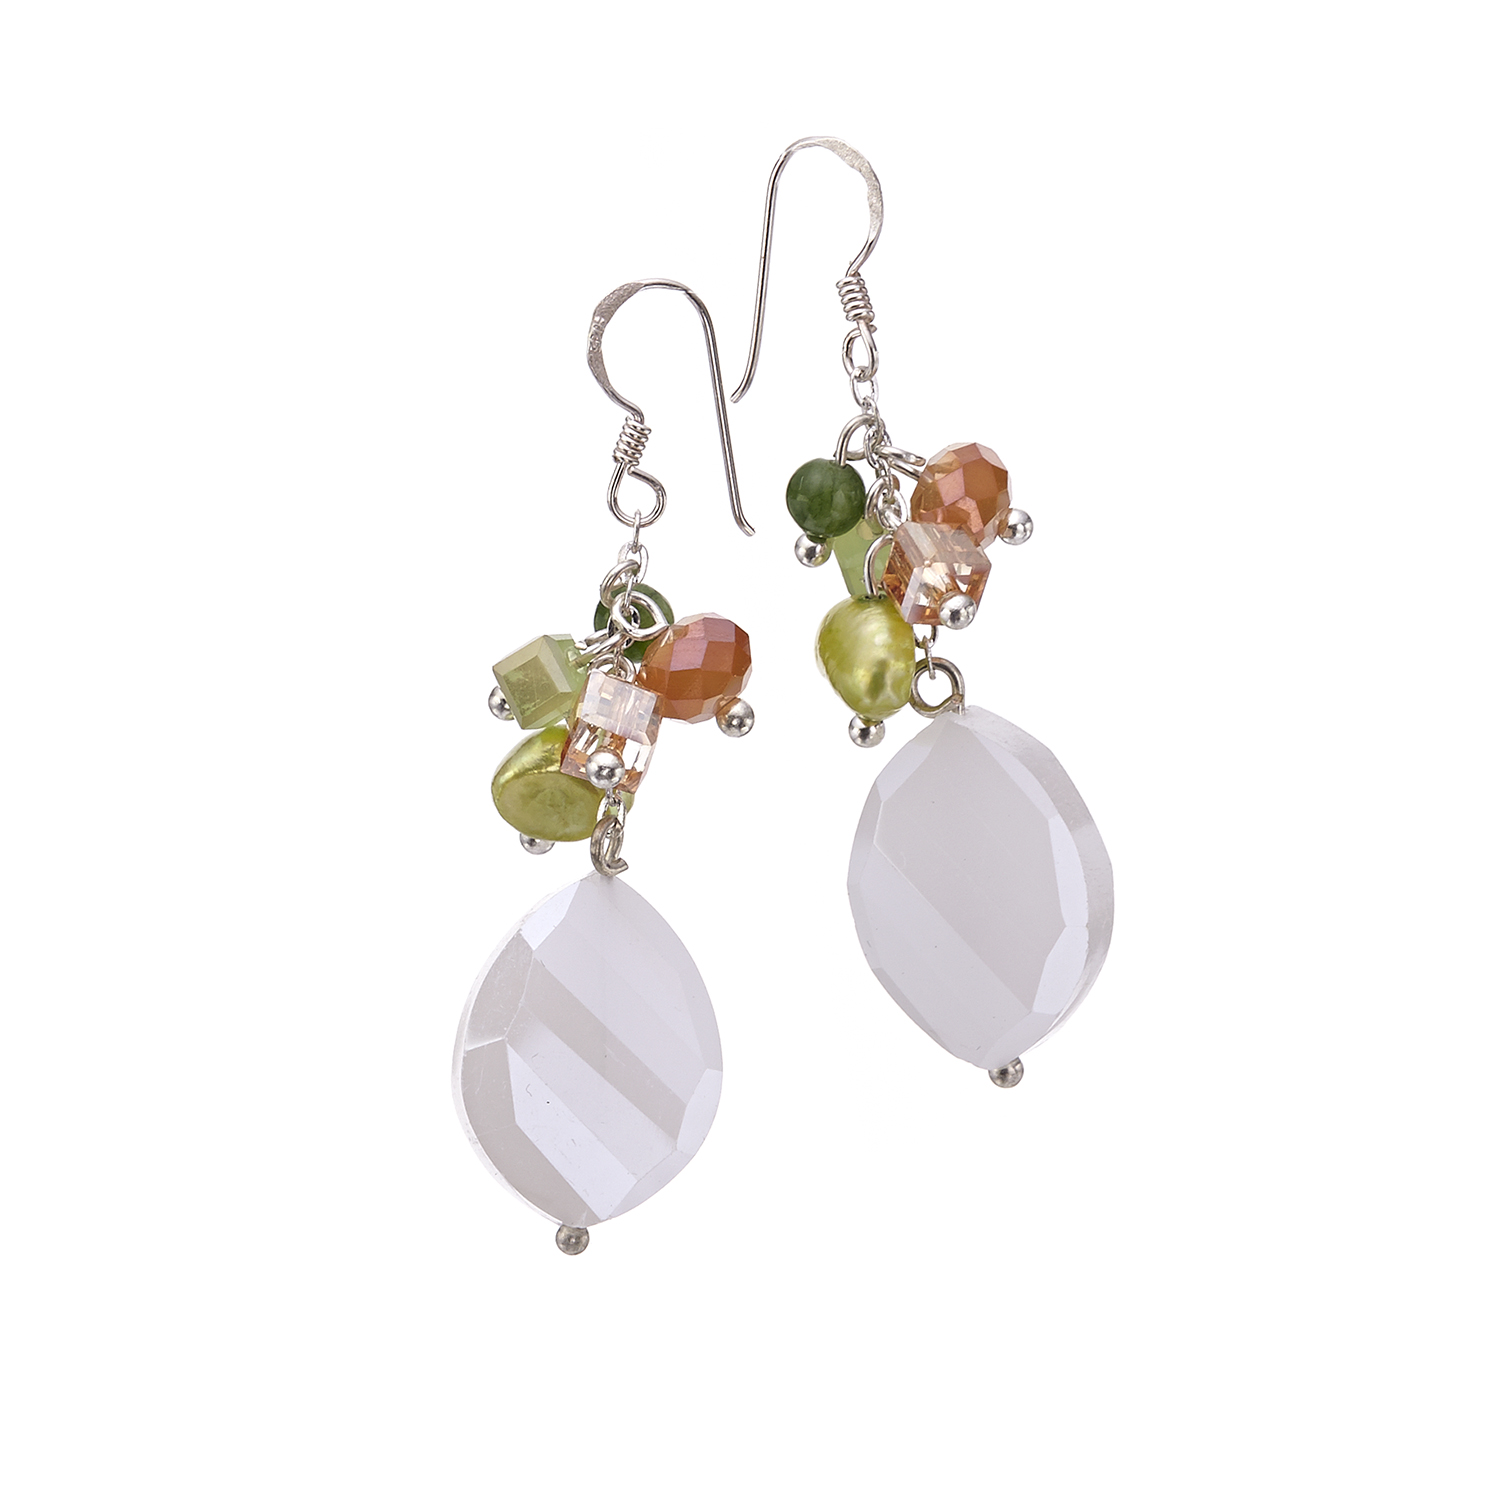 Silver-Plated Brass White Crystal Mother of Pearl Cluster Dangle Earrings 1.8